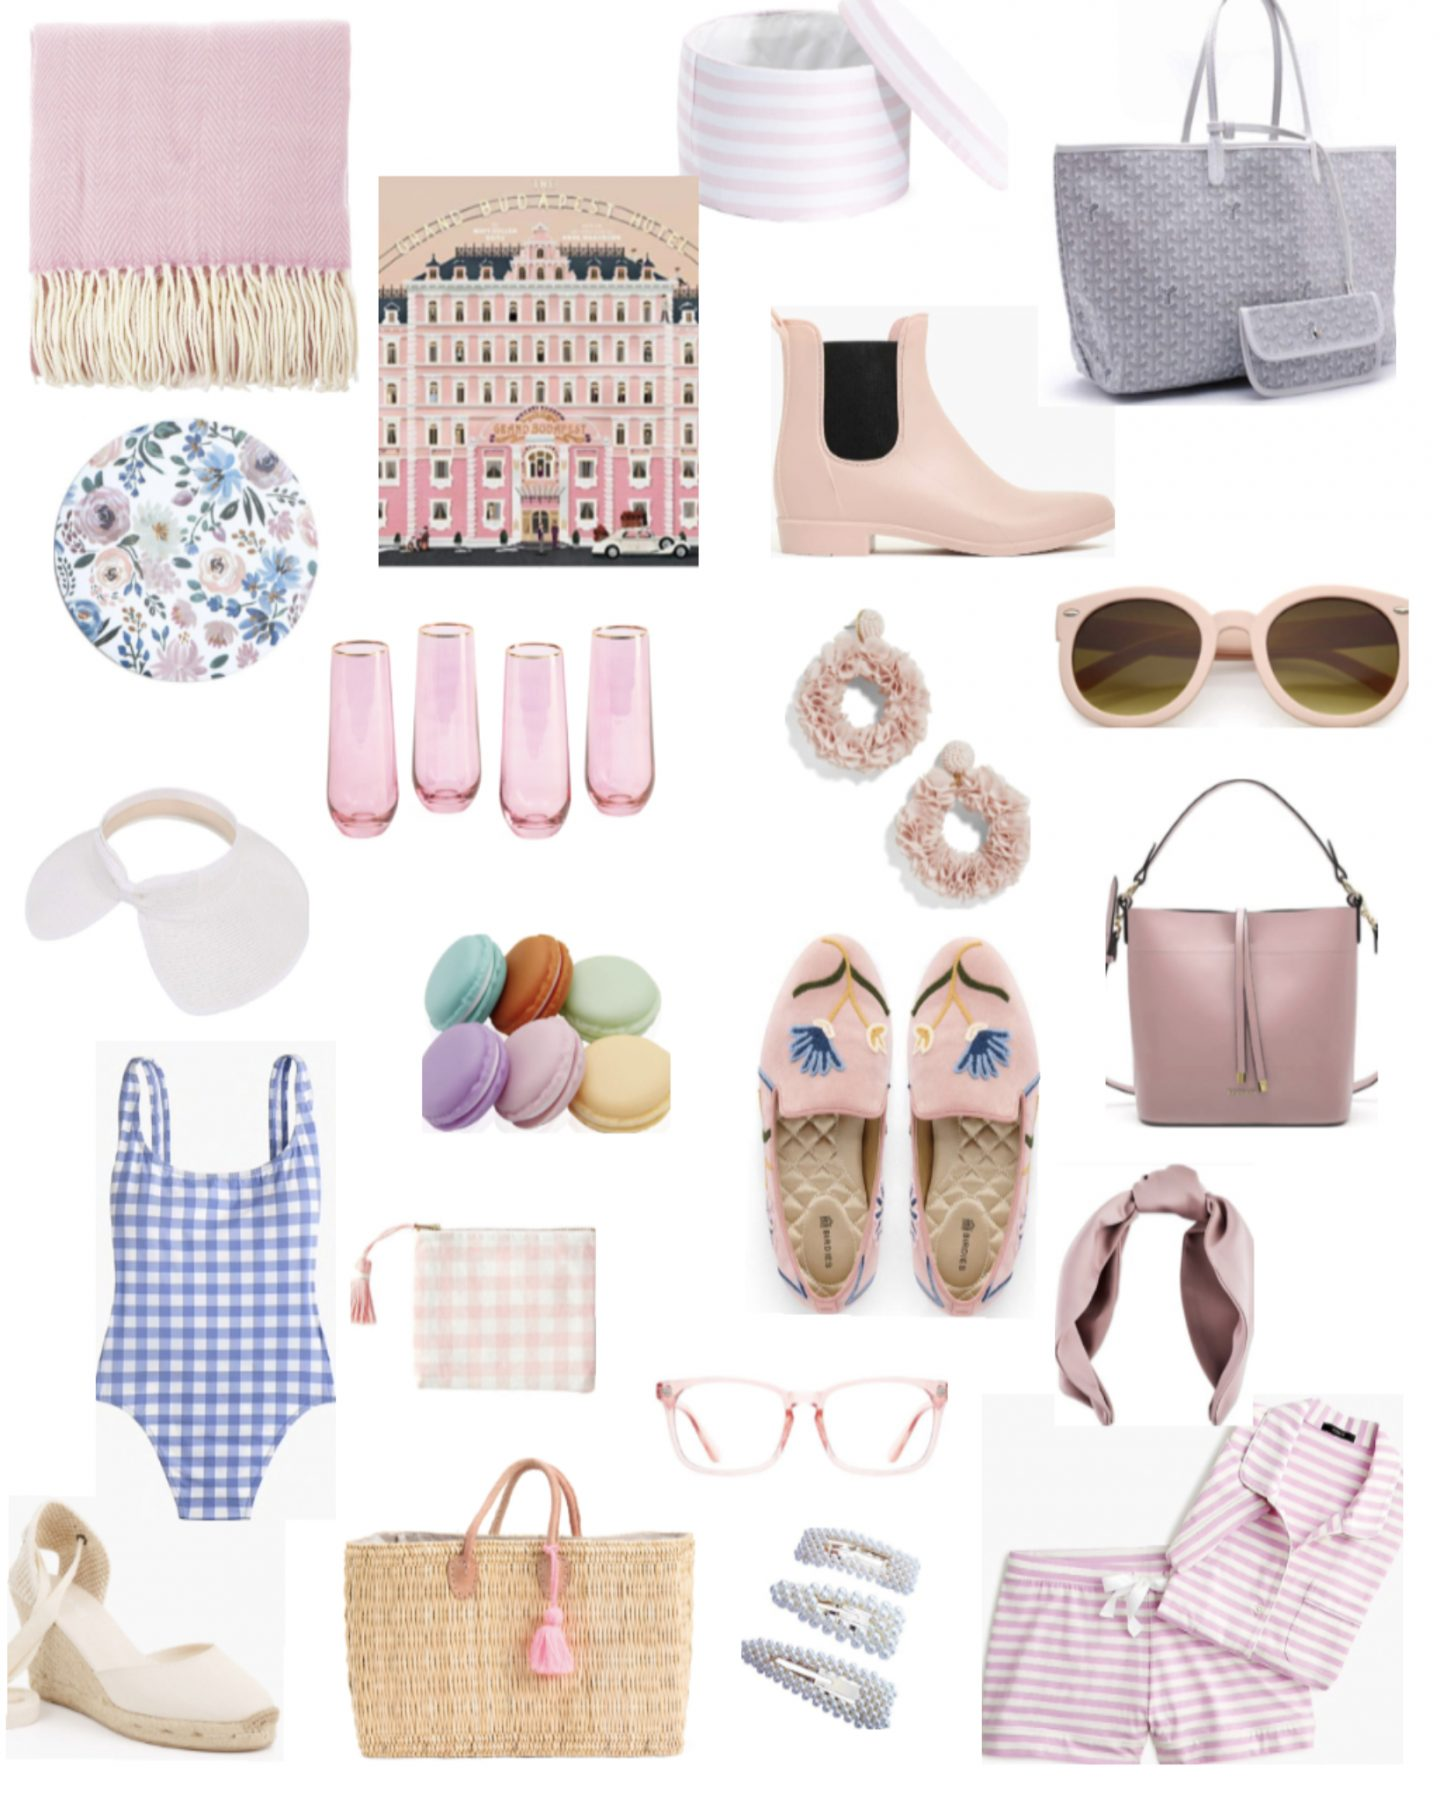 Affordable Spring Fashion & Home Trends!